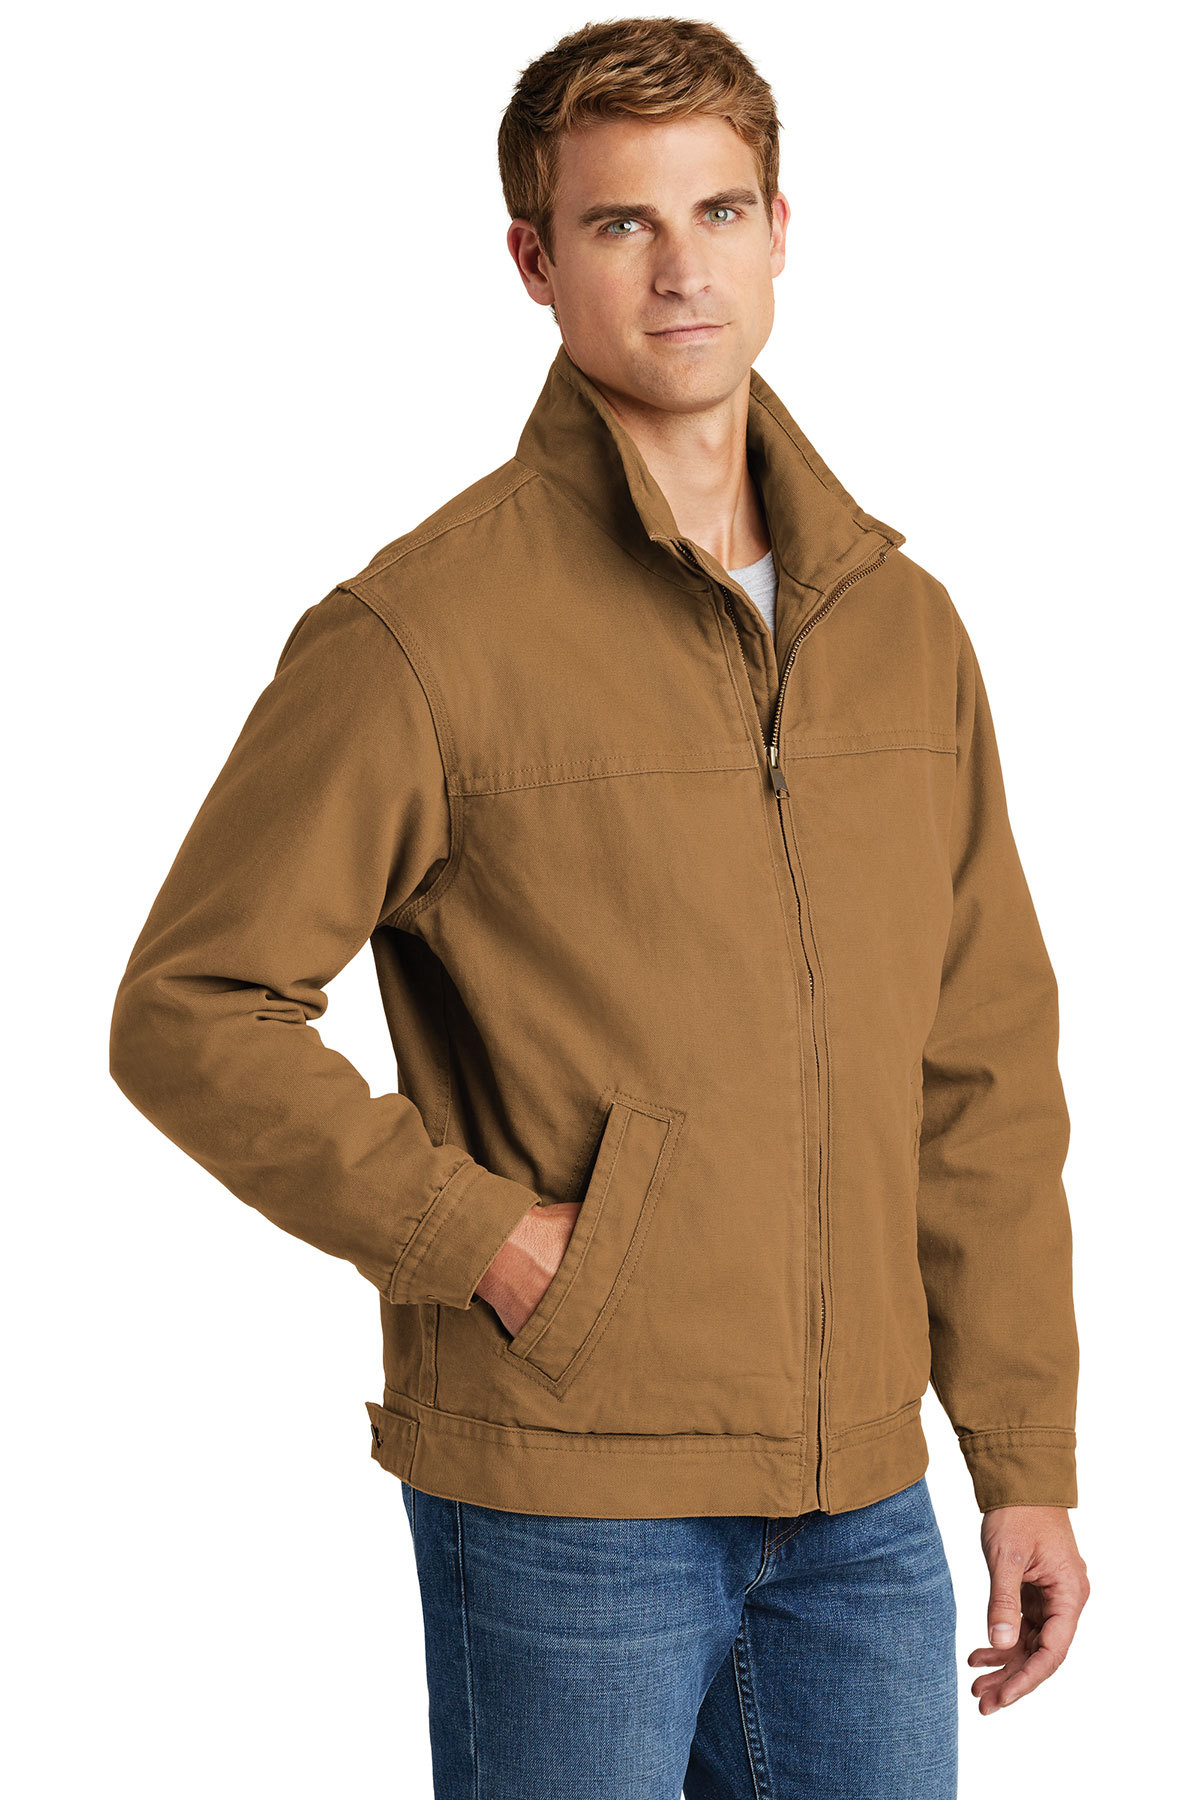 3e8984dc389 ... CornerStone® Washed Duck Cloth Flannel-Lined Work Jacket. A maximum of  8 logos have been uploaded. Please remove a logo from My Logos to continue